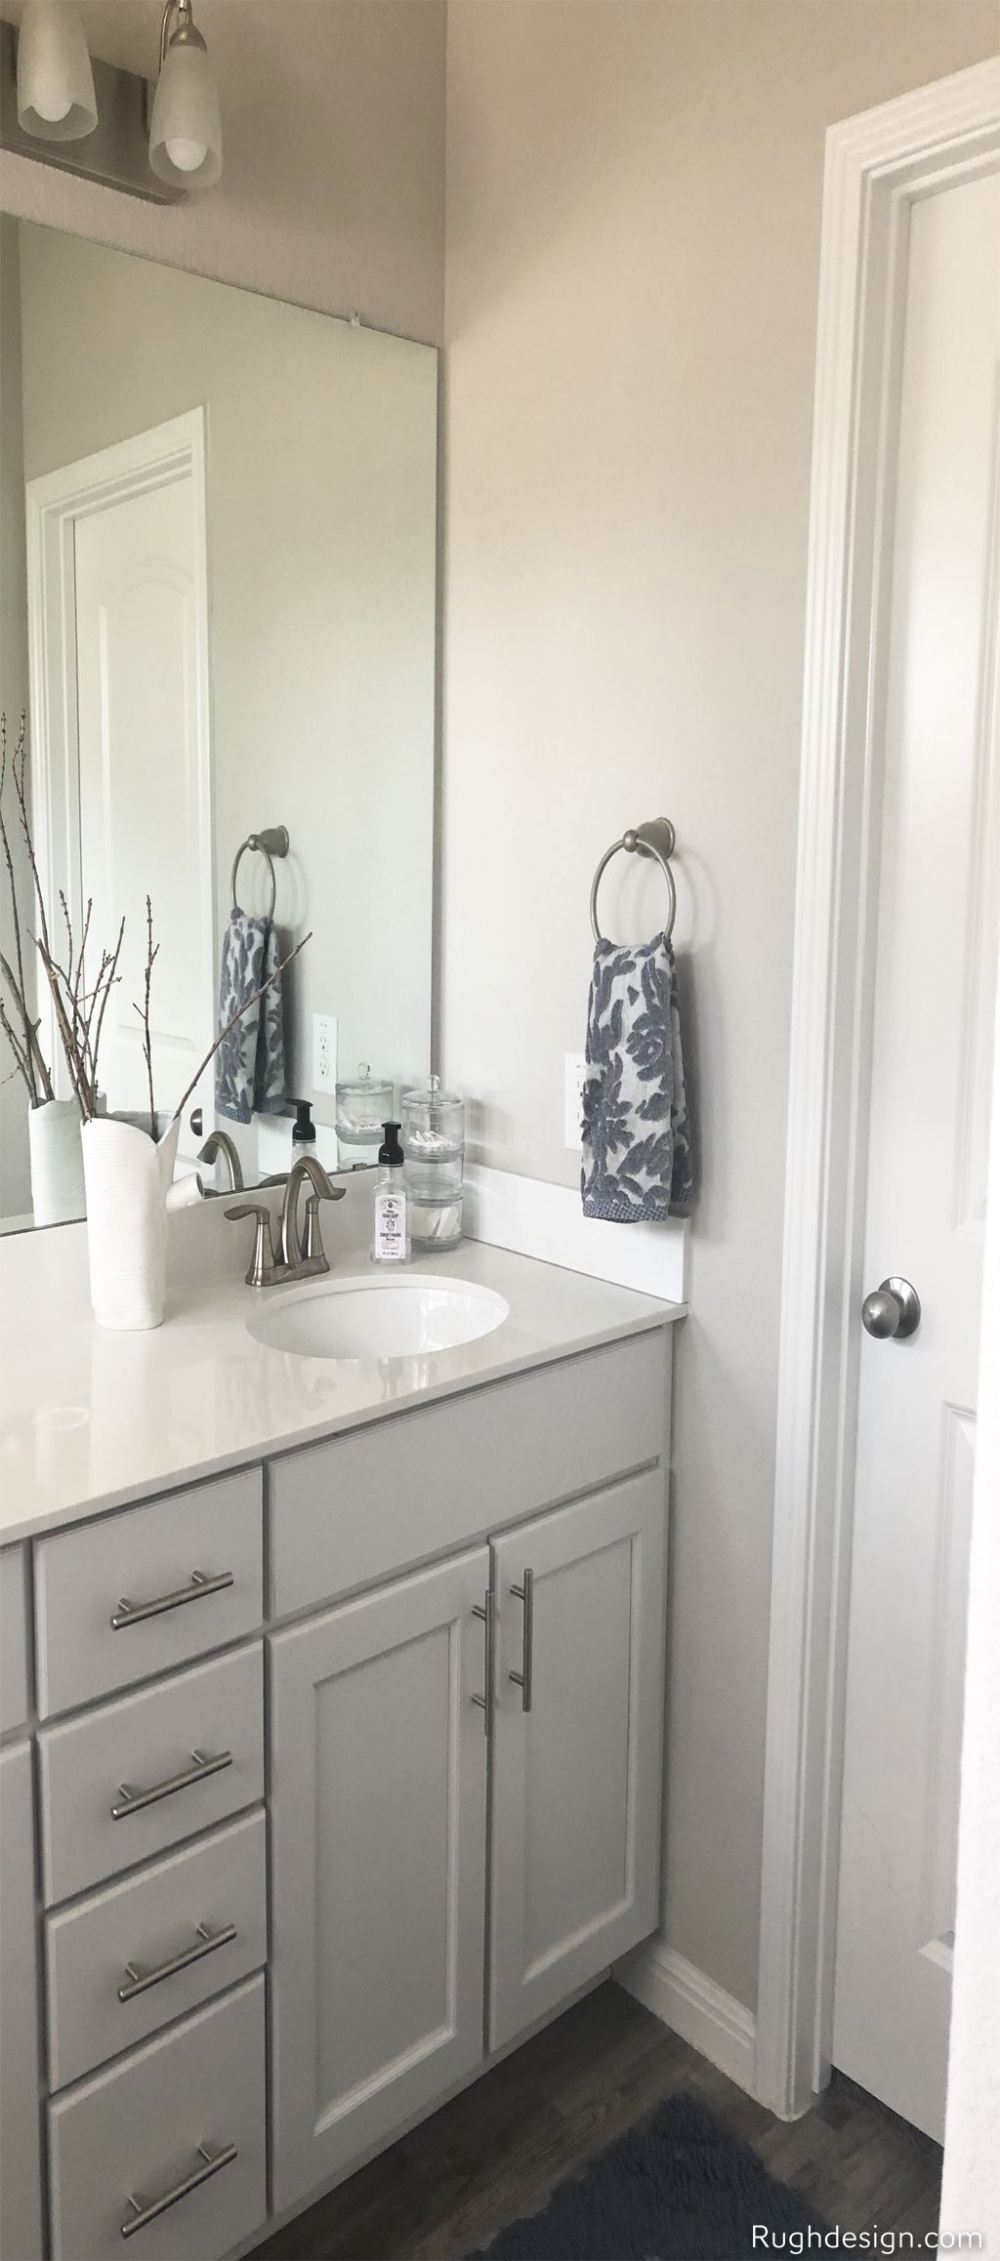 Agreeable Gray Color Review By Laura Rugh Rugh Design Bathroom Color Schemes Grey Bathroom Cabinets Gray Bathroom Walls